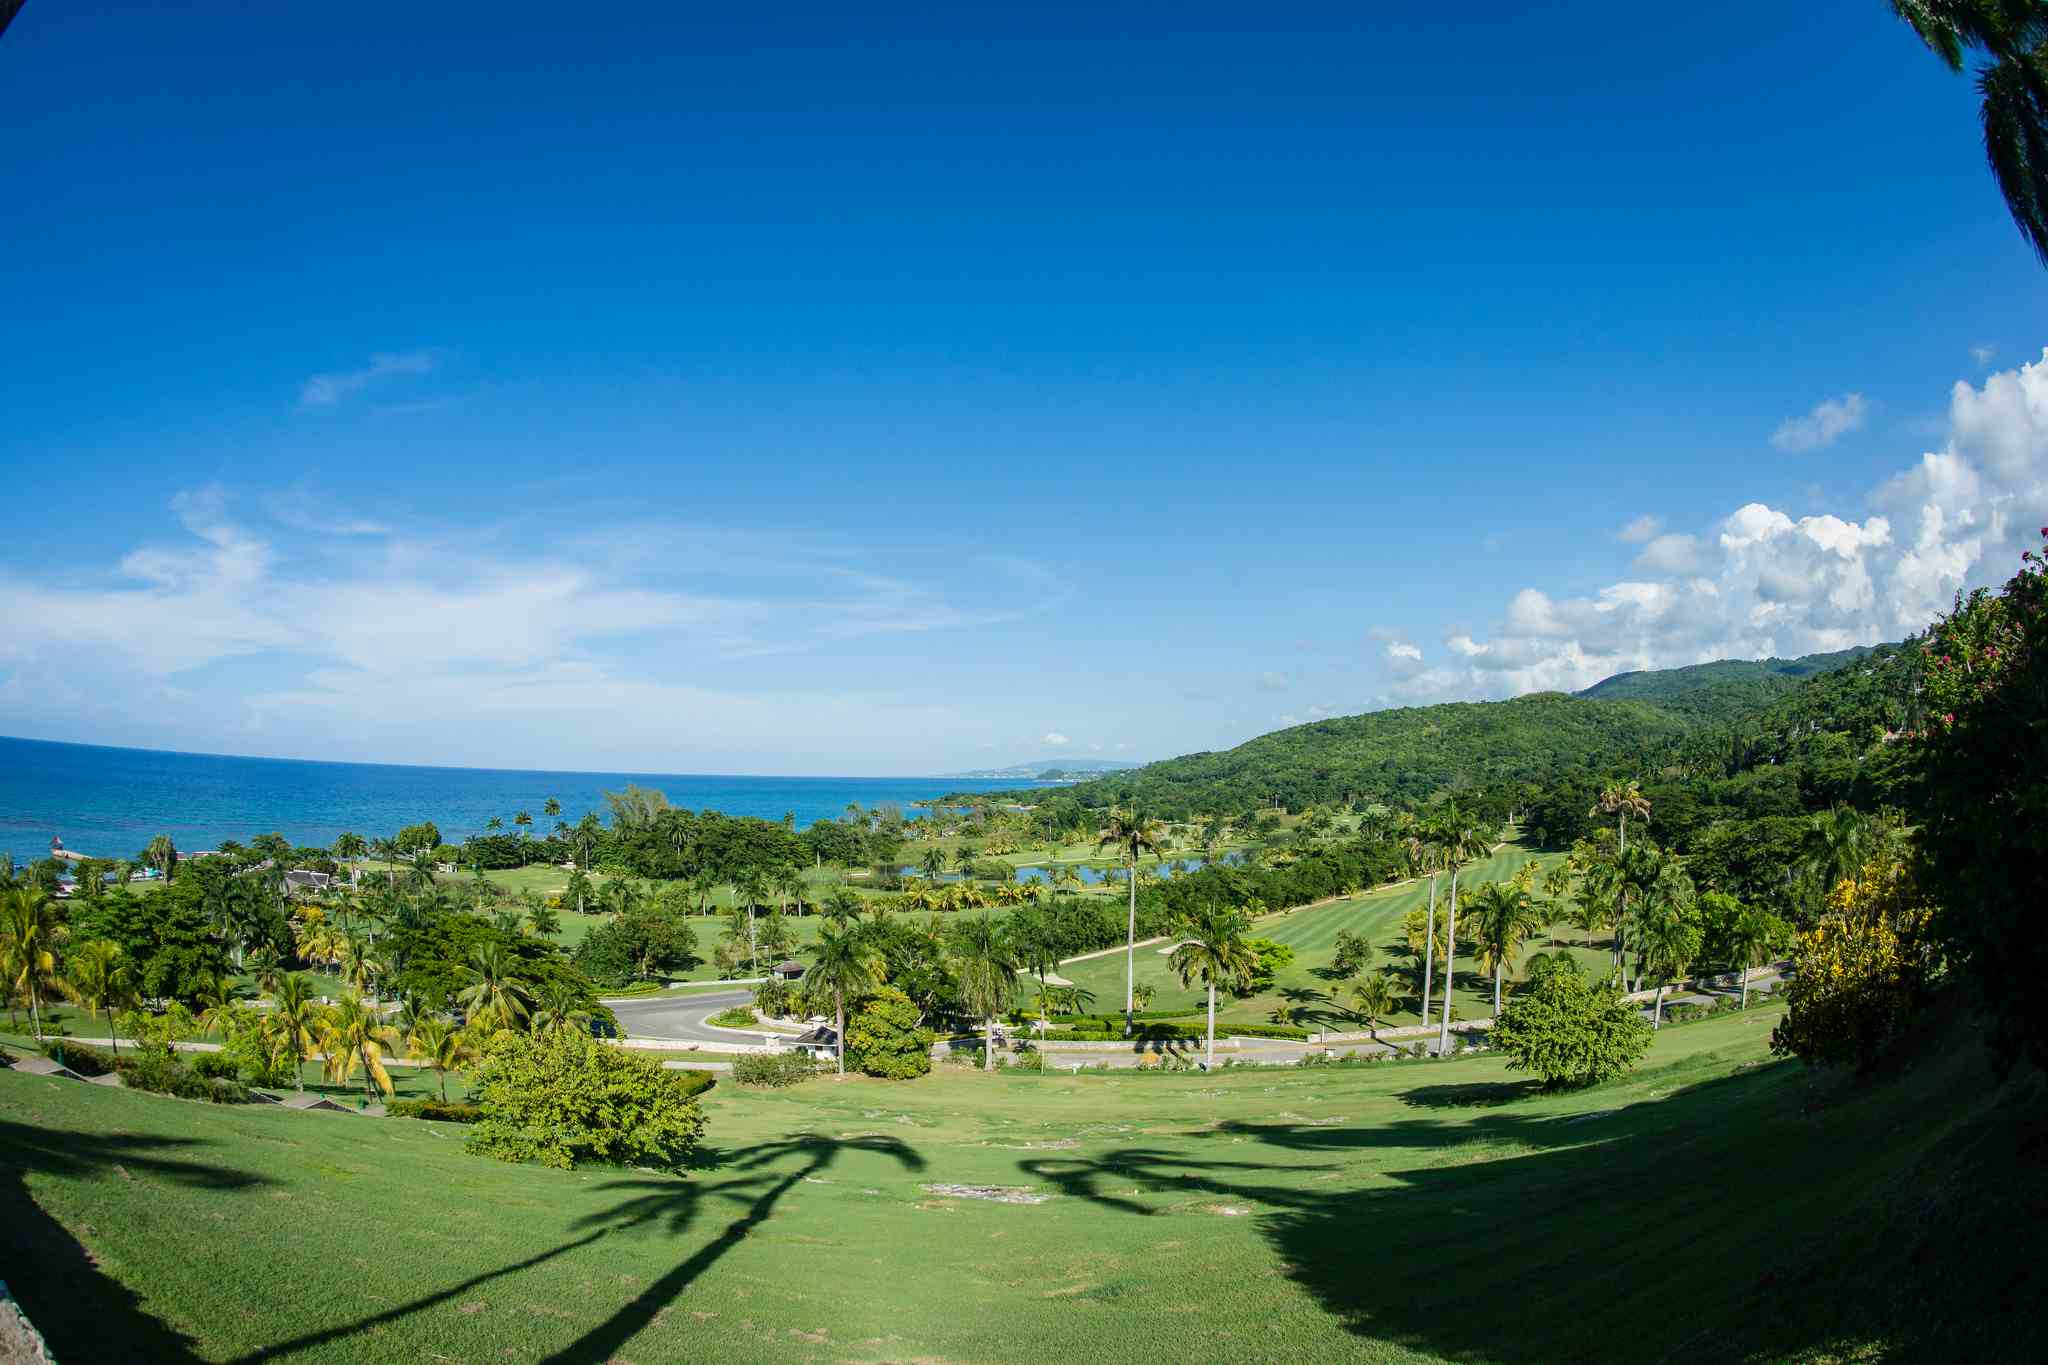 Golf course at The Tyrall Club at Montego Bay in Jamaica.